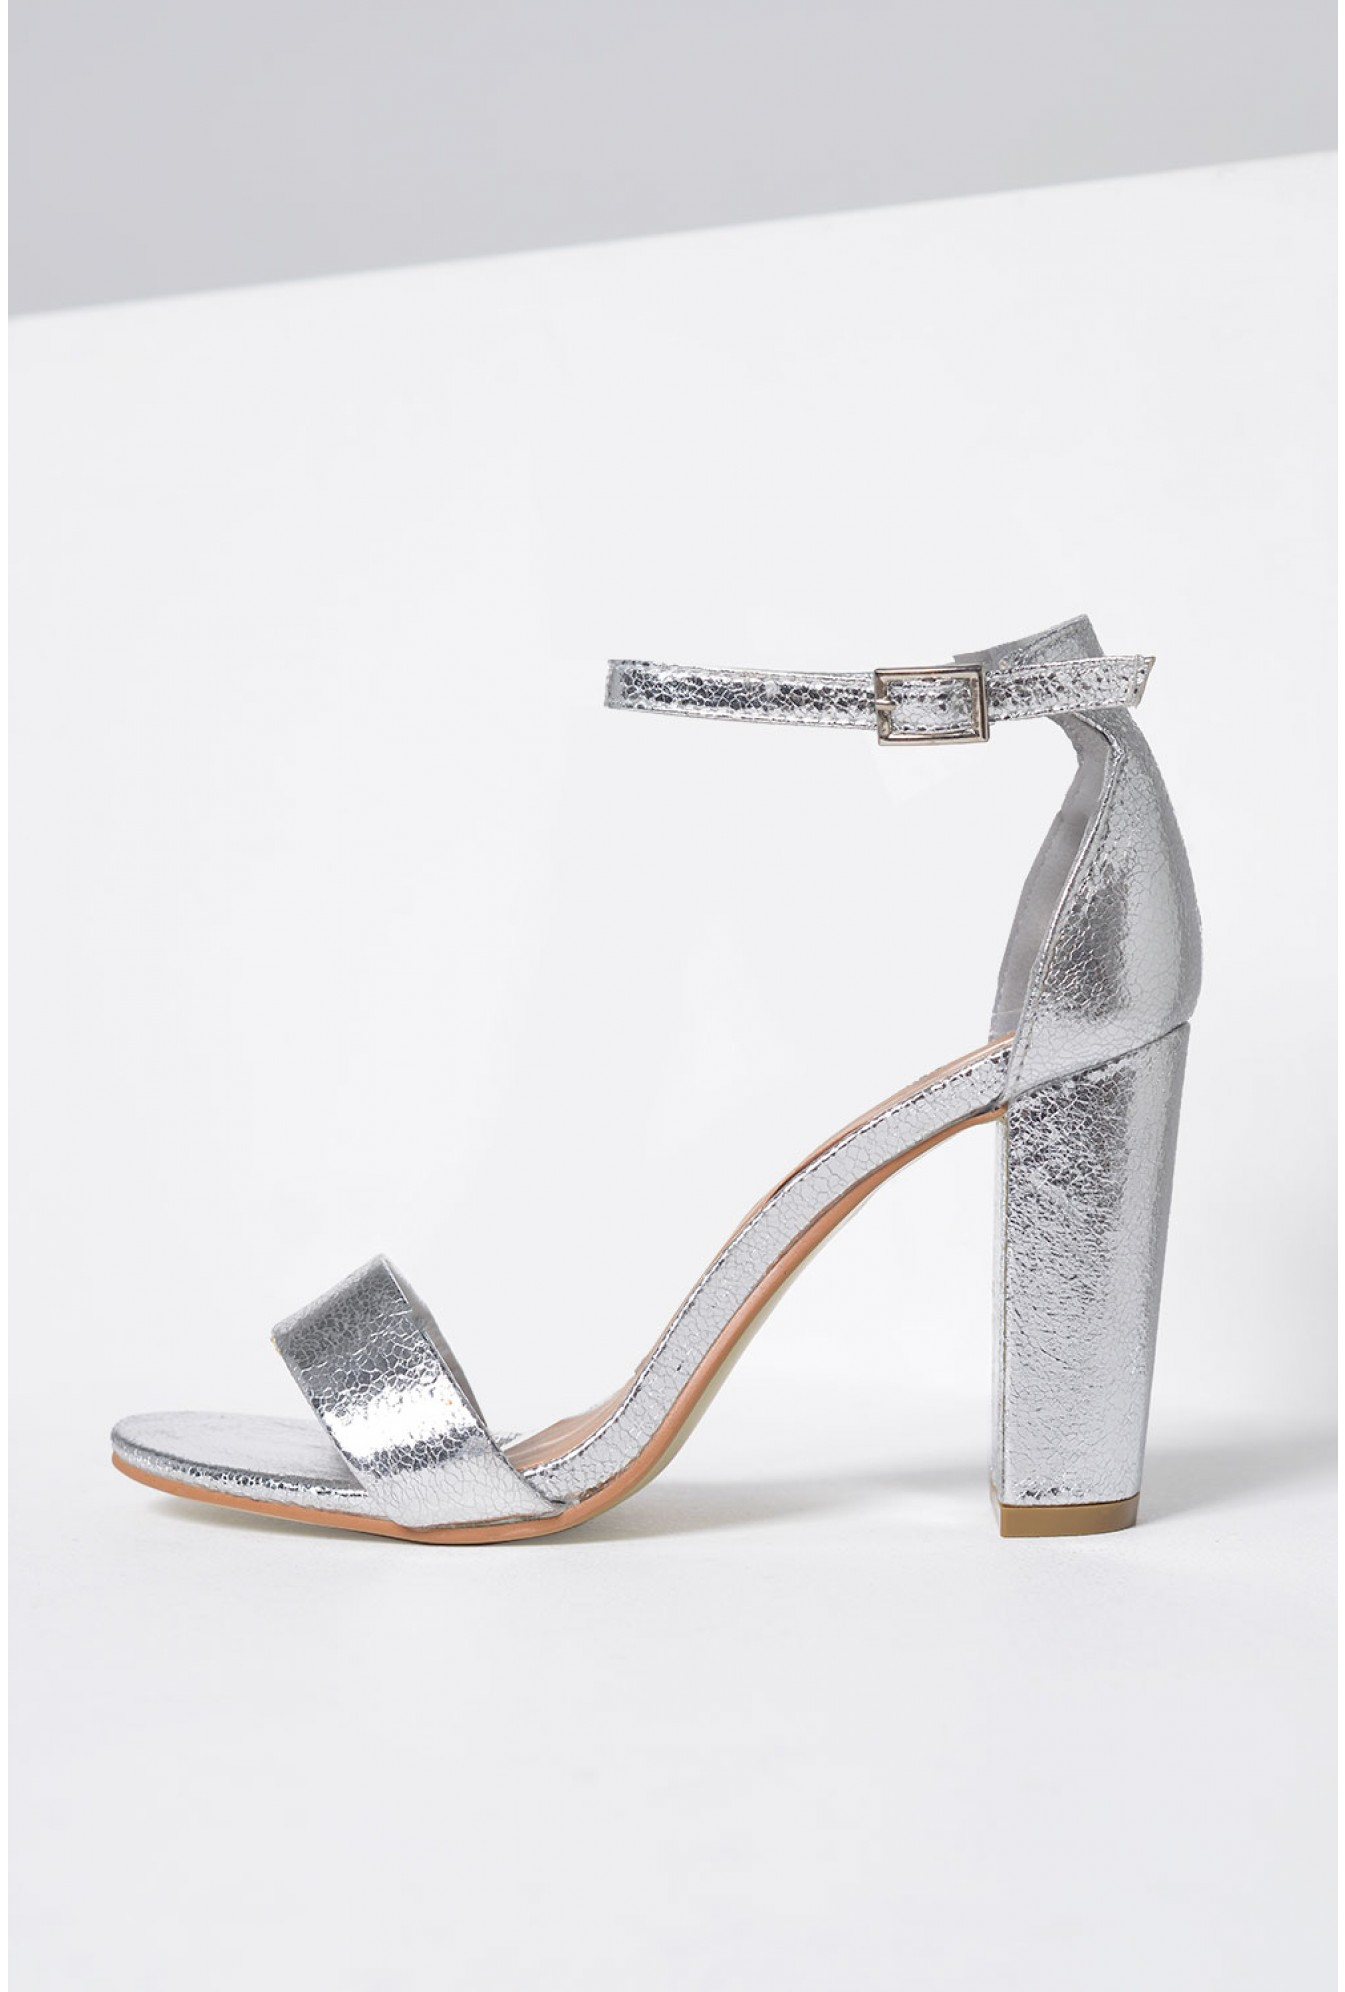 0c07daa16c No Doubt Molly Block Heel Sandals in Silver | iCLOTHING